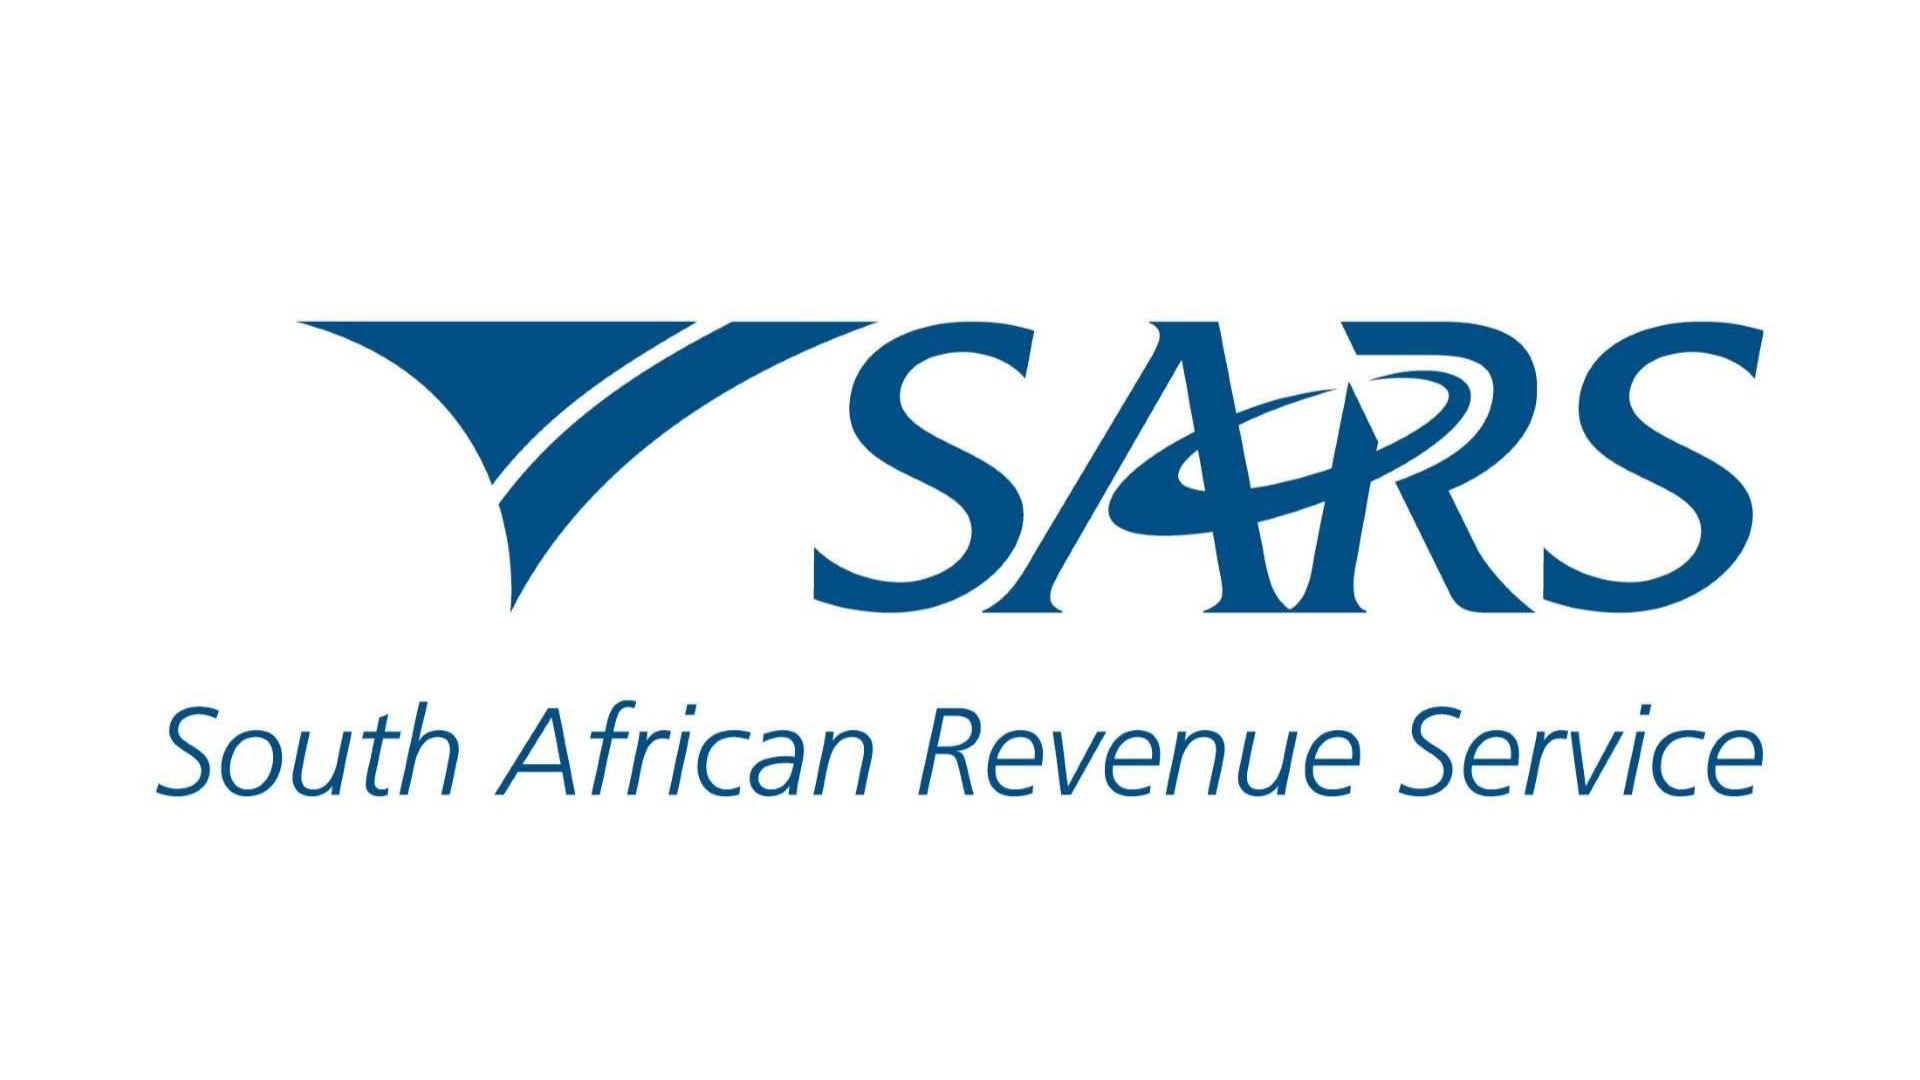 Instead of fully migrating to HTML5, SARS has built its own browser - htxt.africa